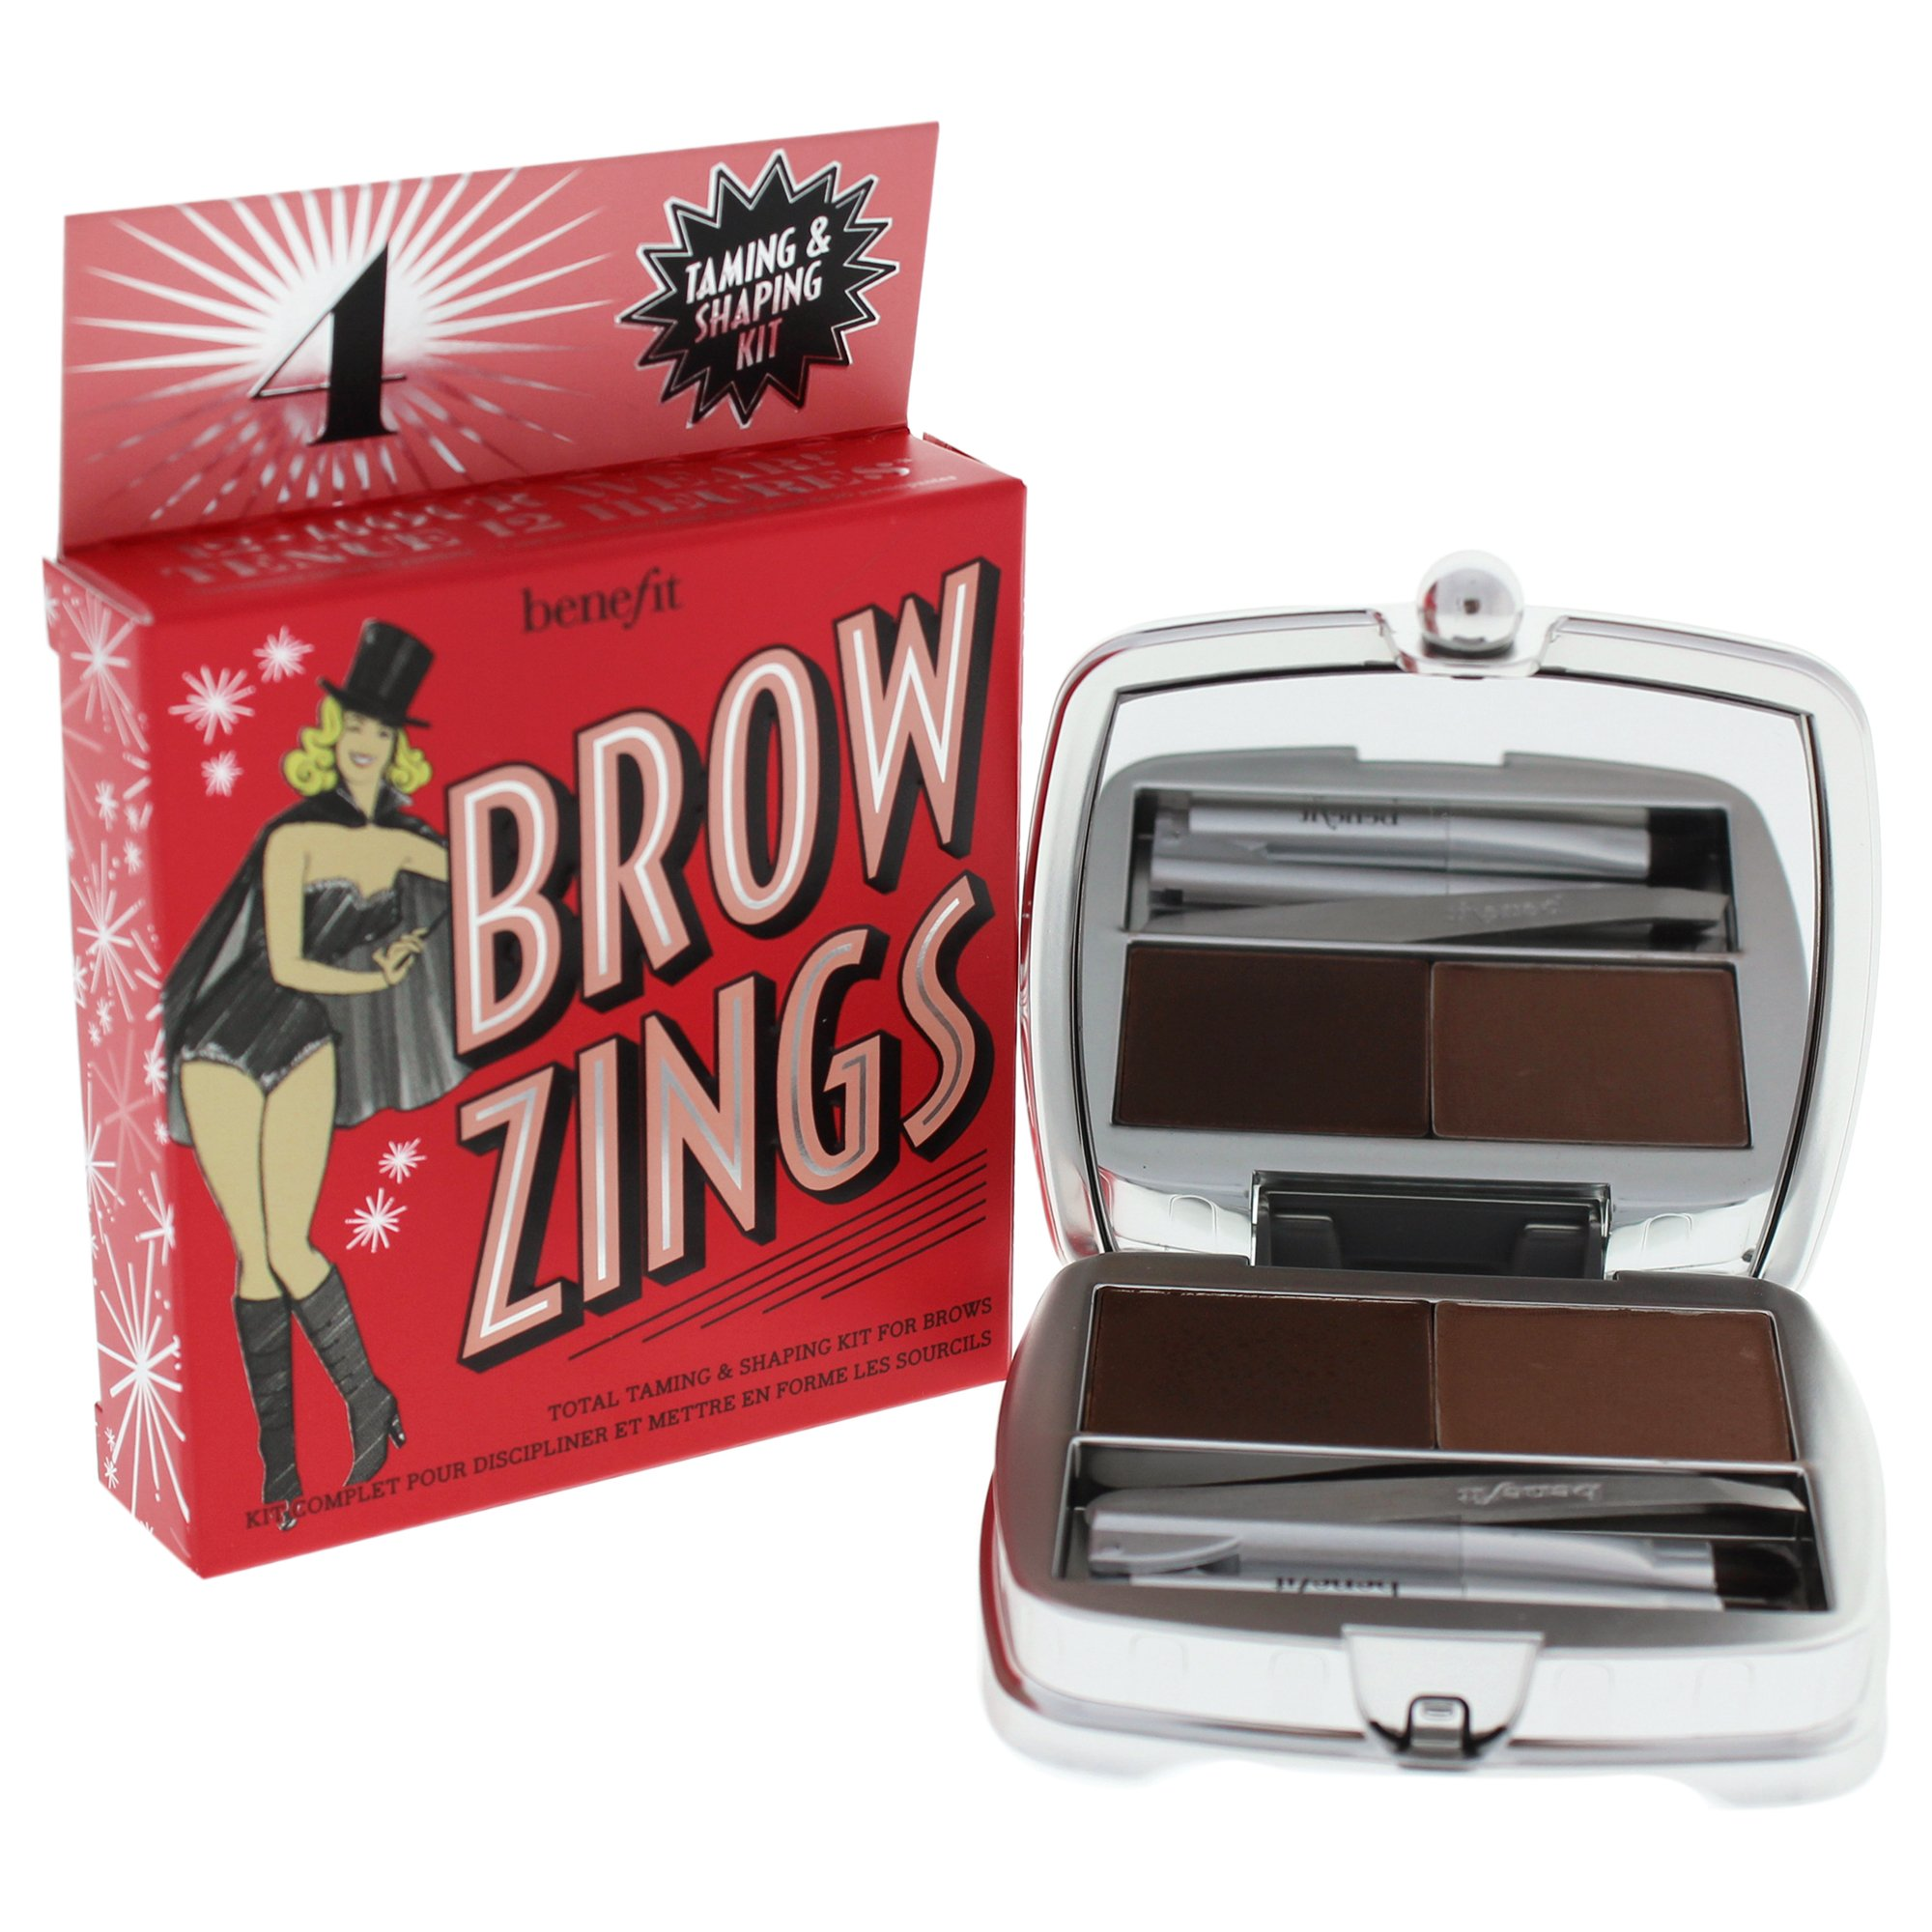 Benefit Brow Zings Tame & Shape Eyebrow Powder, Medium, 0.15 Ounce by Benefit